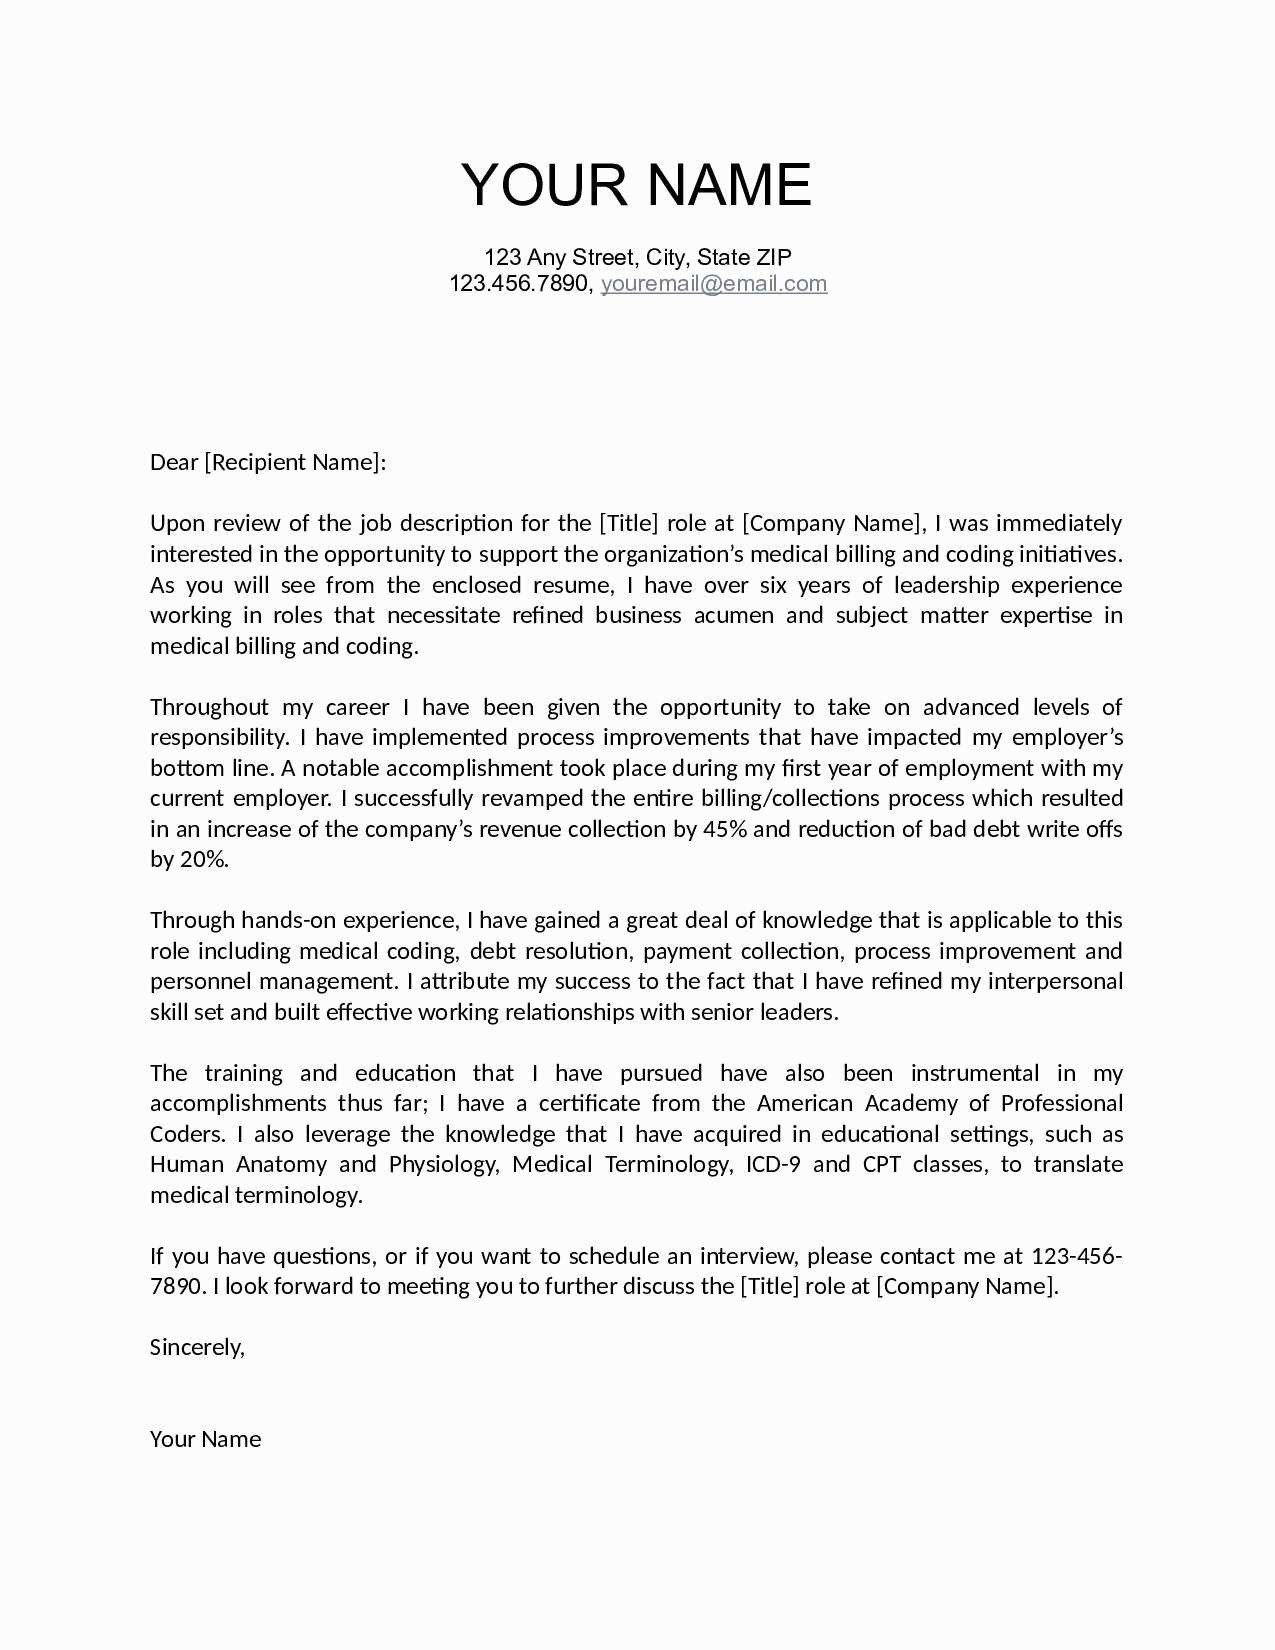 Write Up Letter for Employee Template - Email Template to Schedule A Meeting New Job Fer Letter Template Us